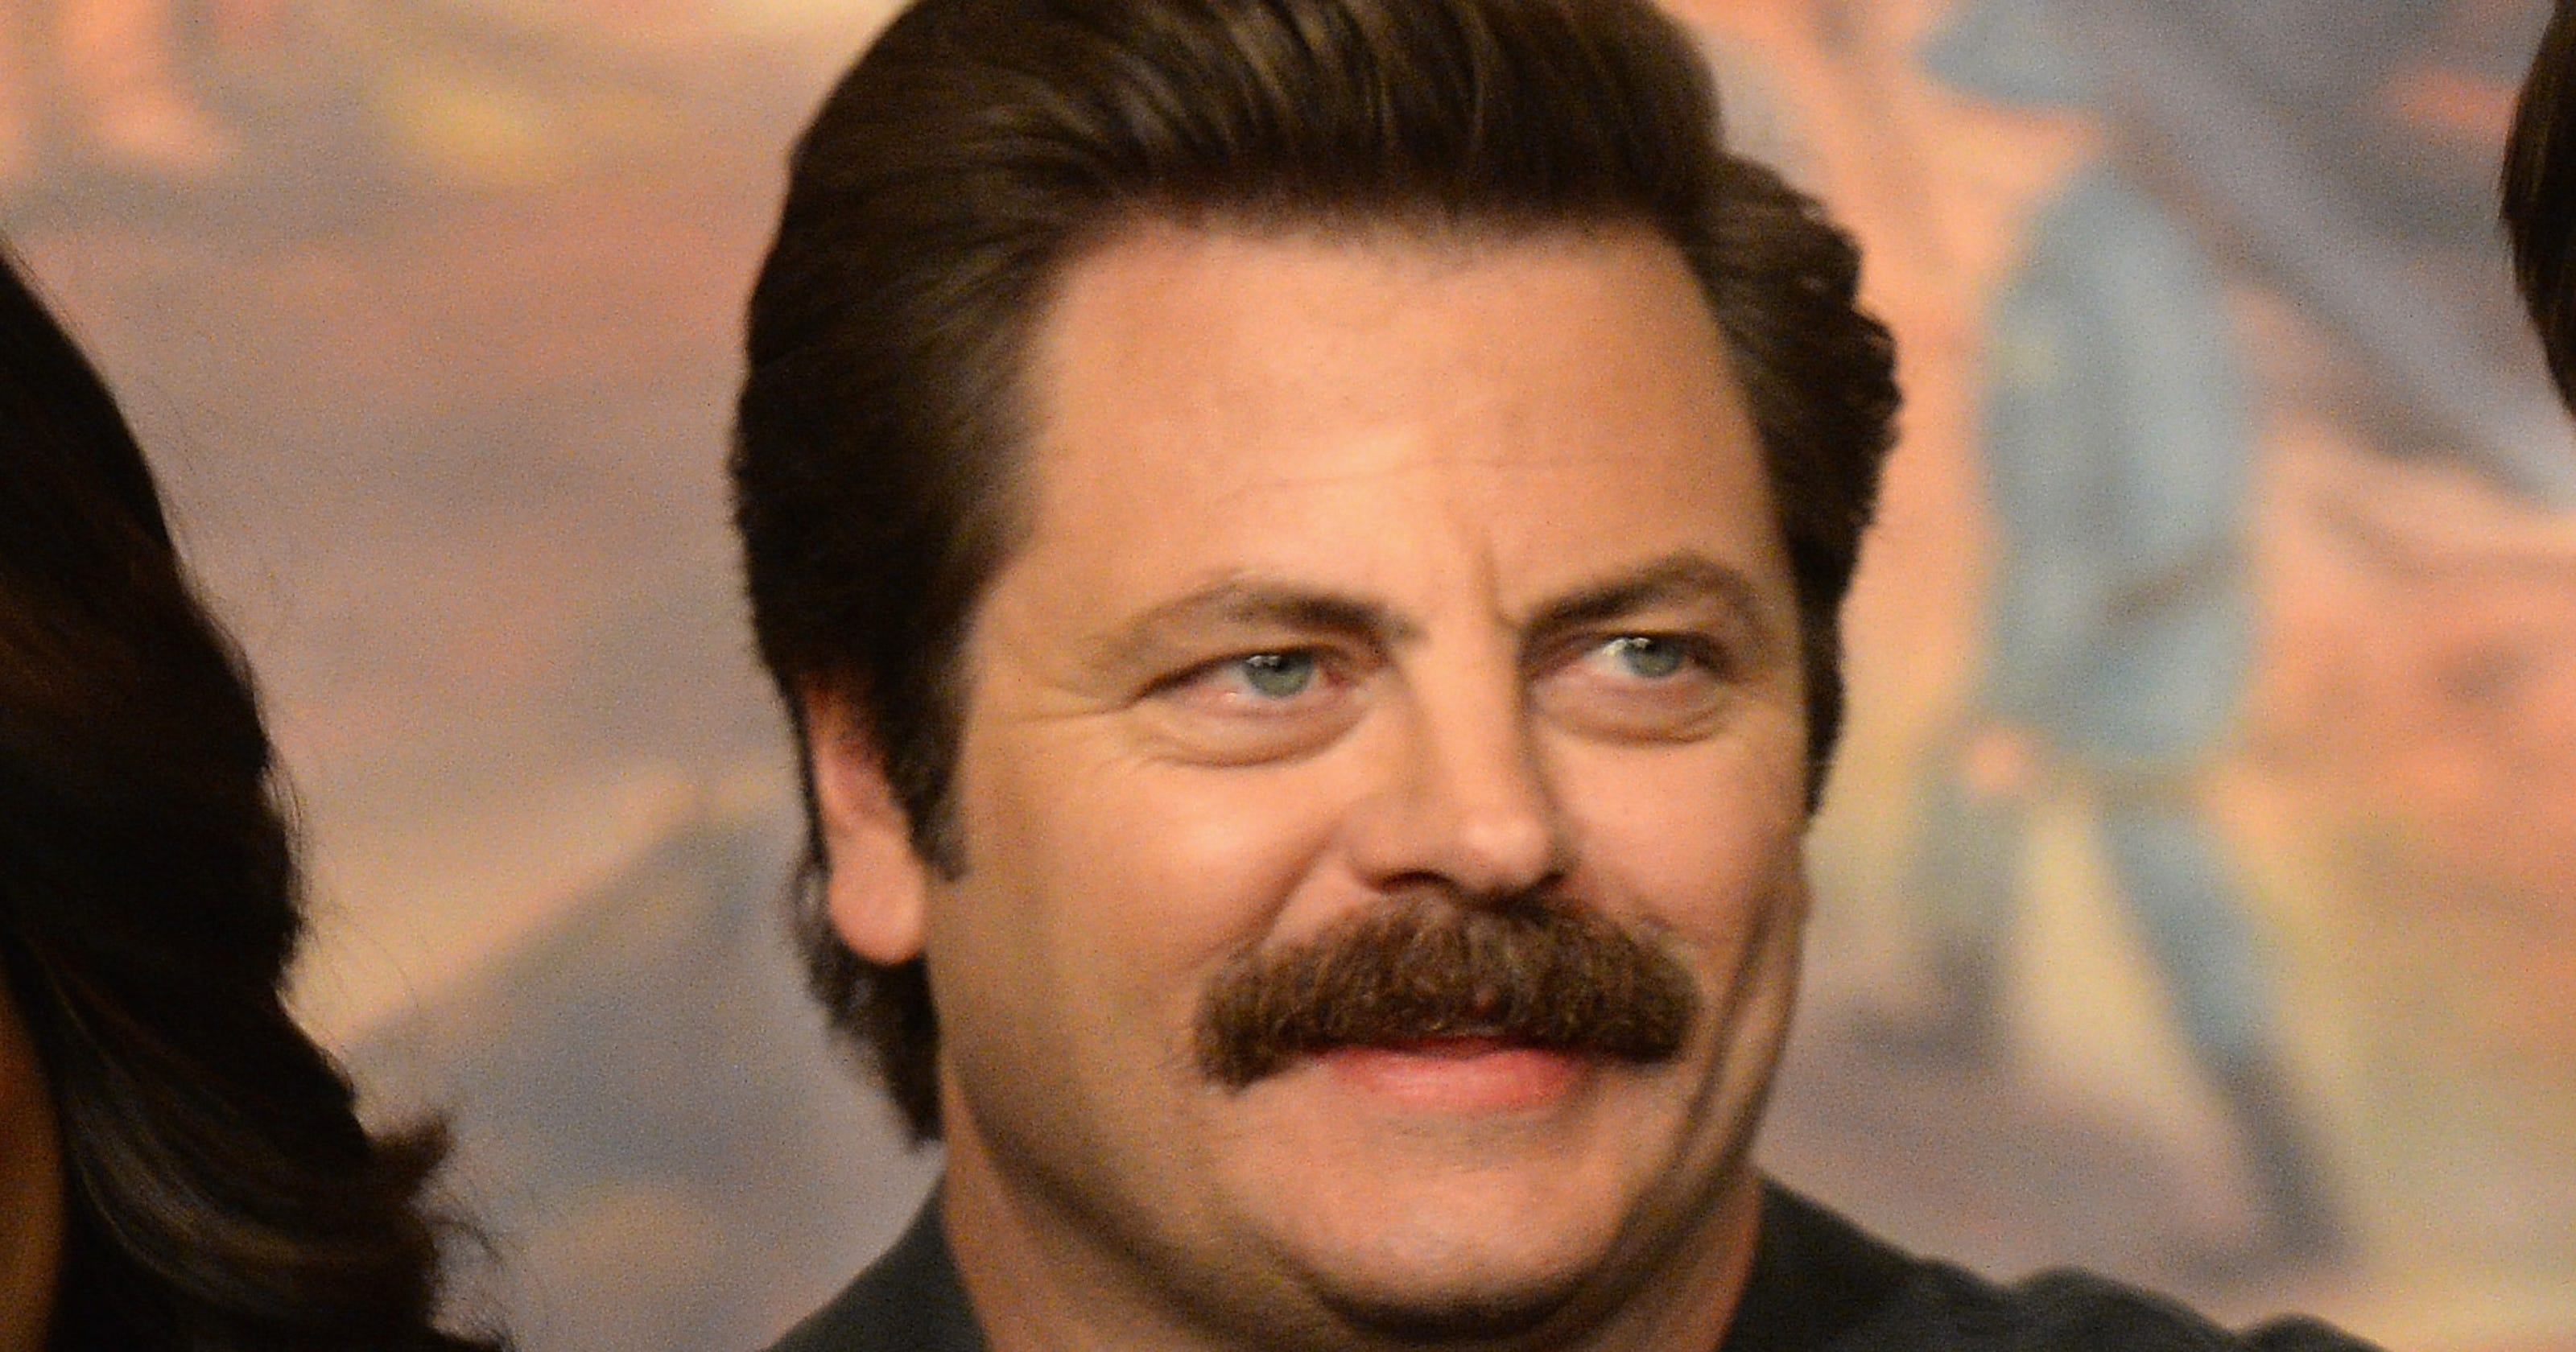 Offerman Not Ron Swanson To Stop At Bu